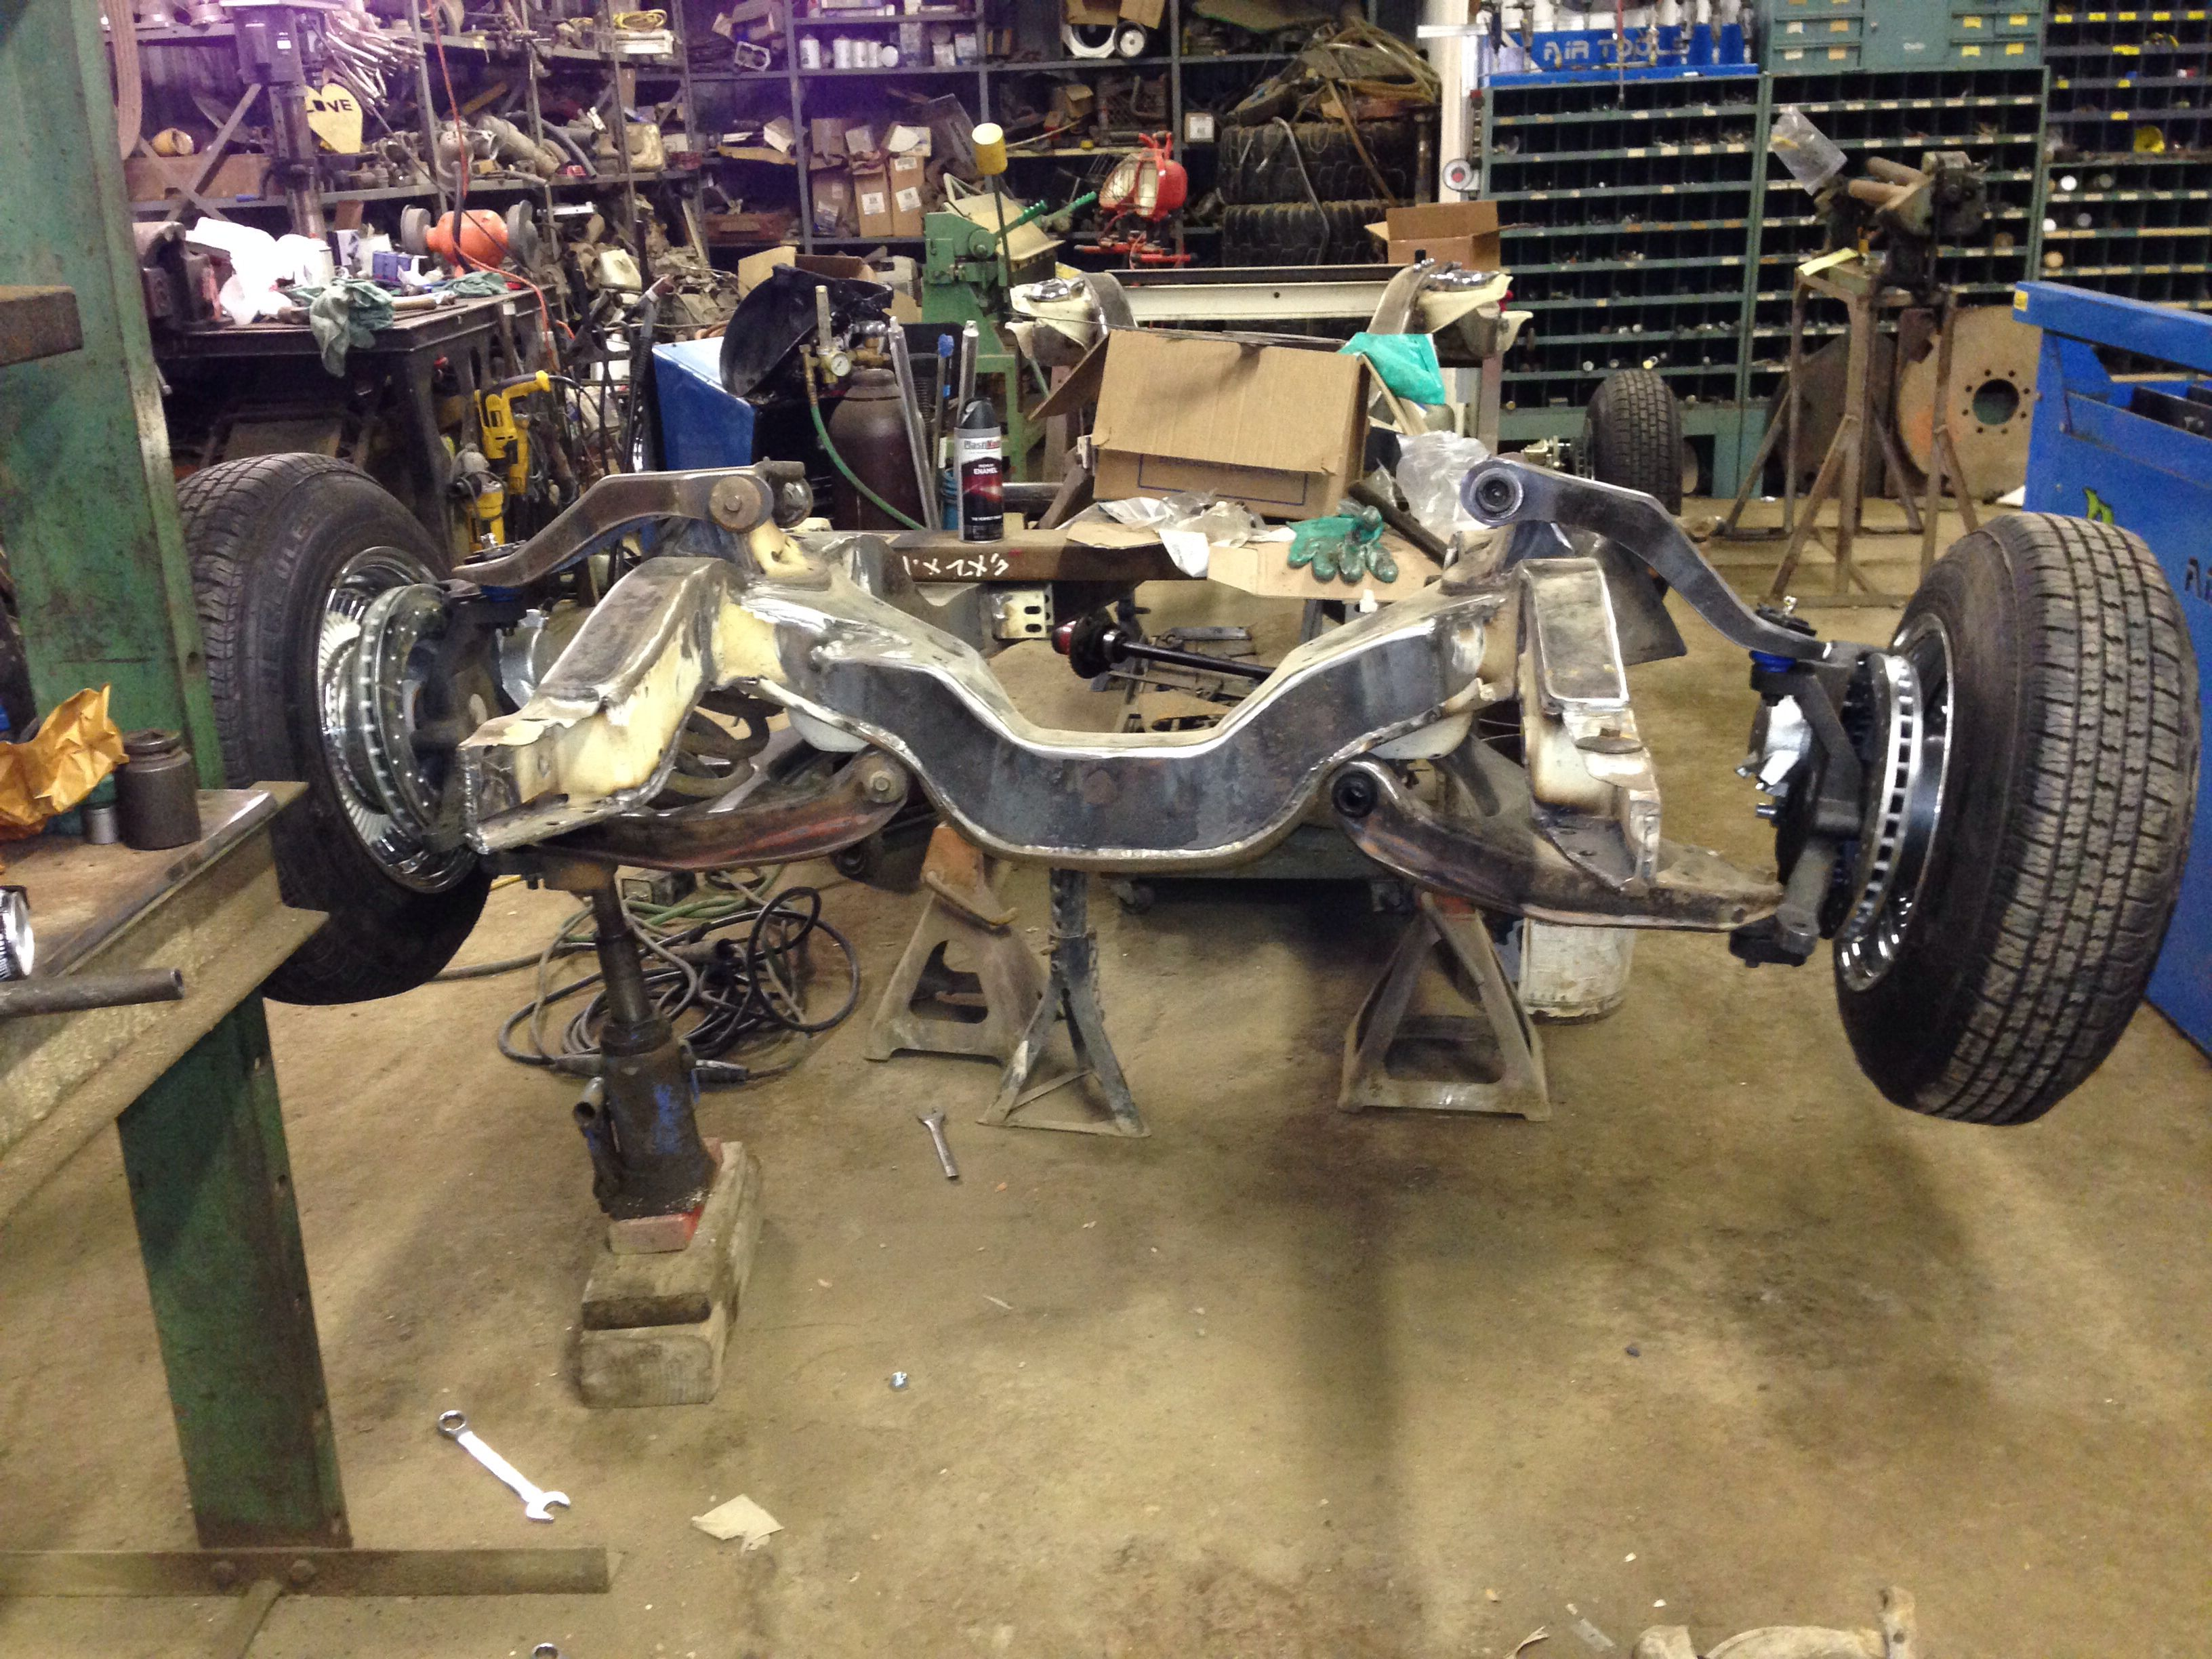 64 impala reinforced frame with custom extended and molded a arms ...